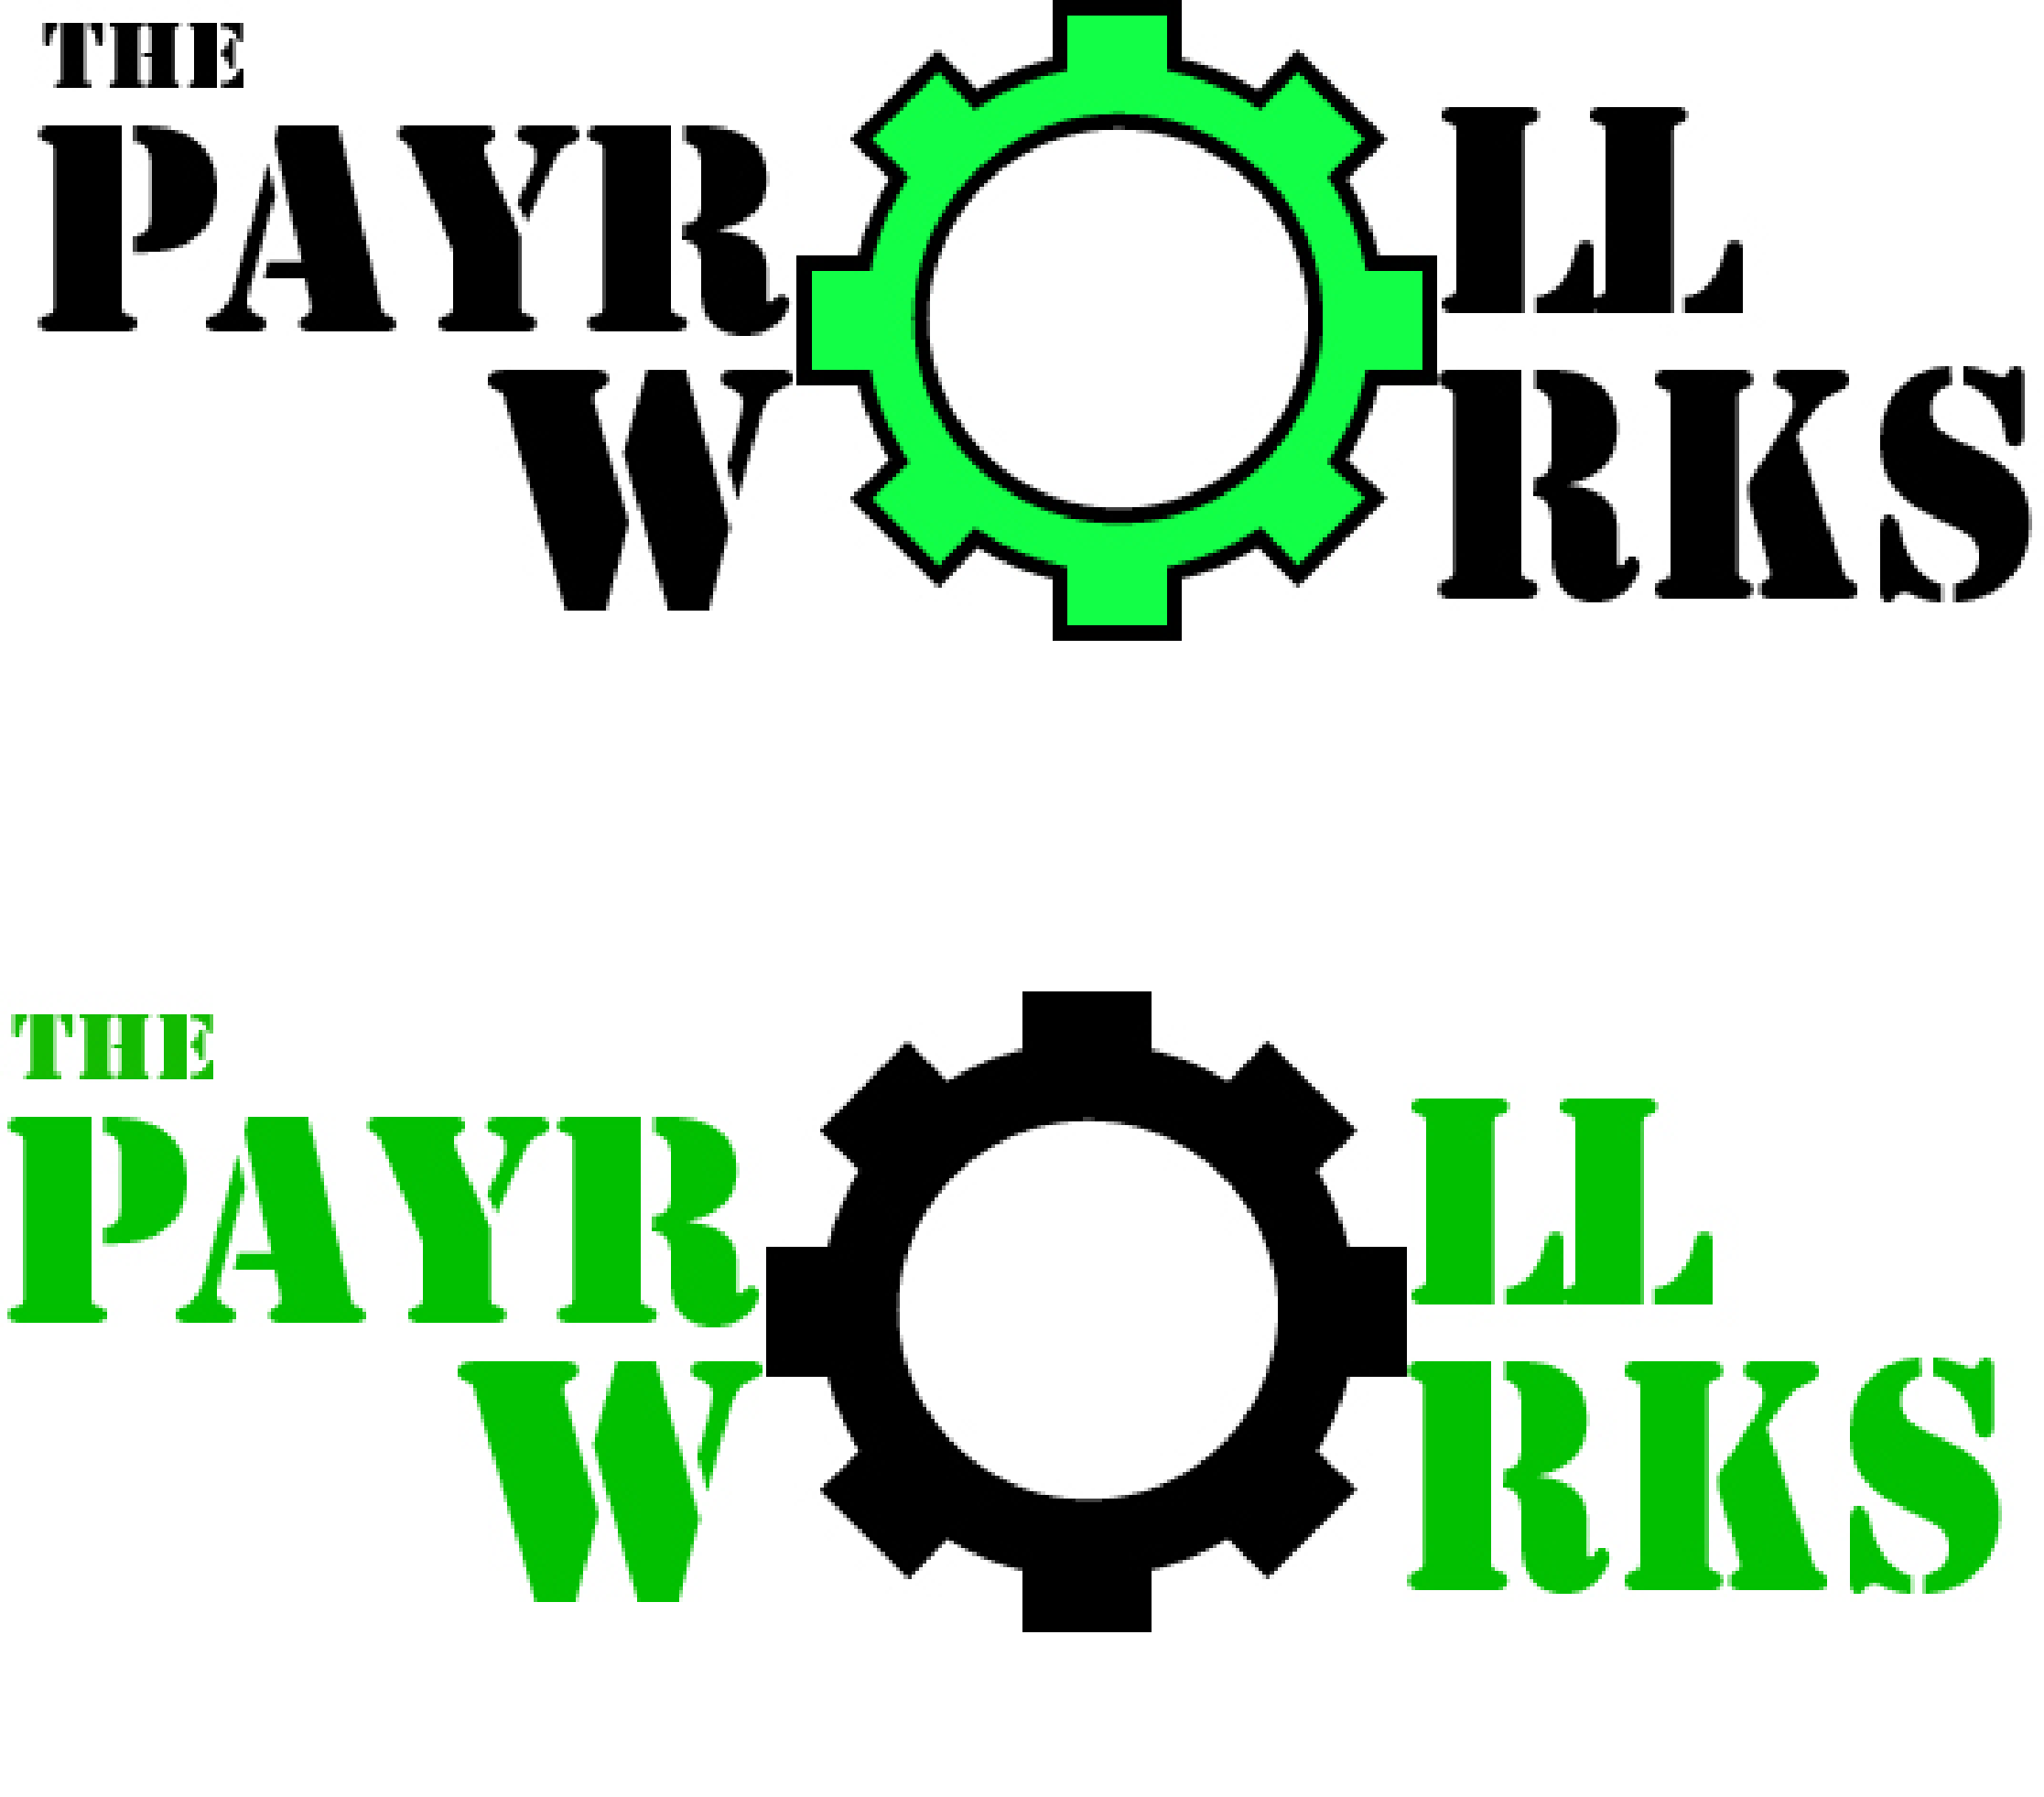 Logo Design by Inno - Entry No. 97 in the Logo Design Contest Captivating Logo Design for The Payroll Works.